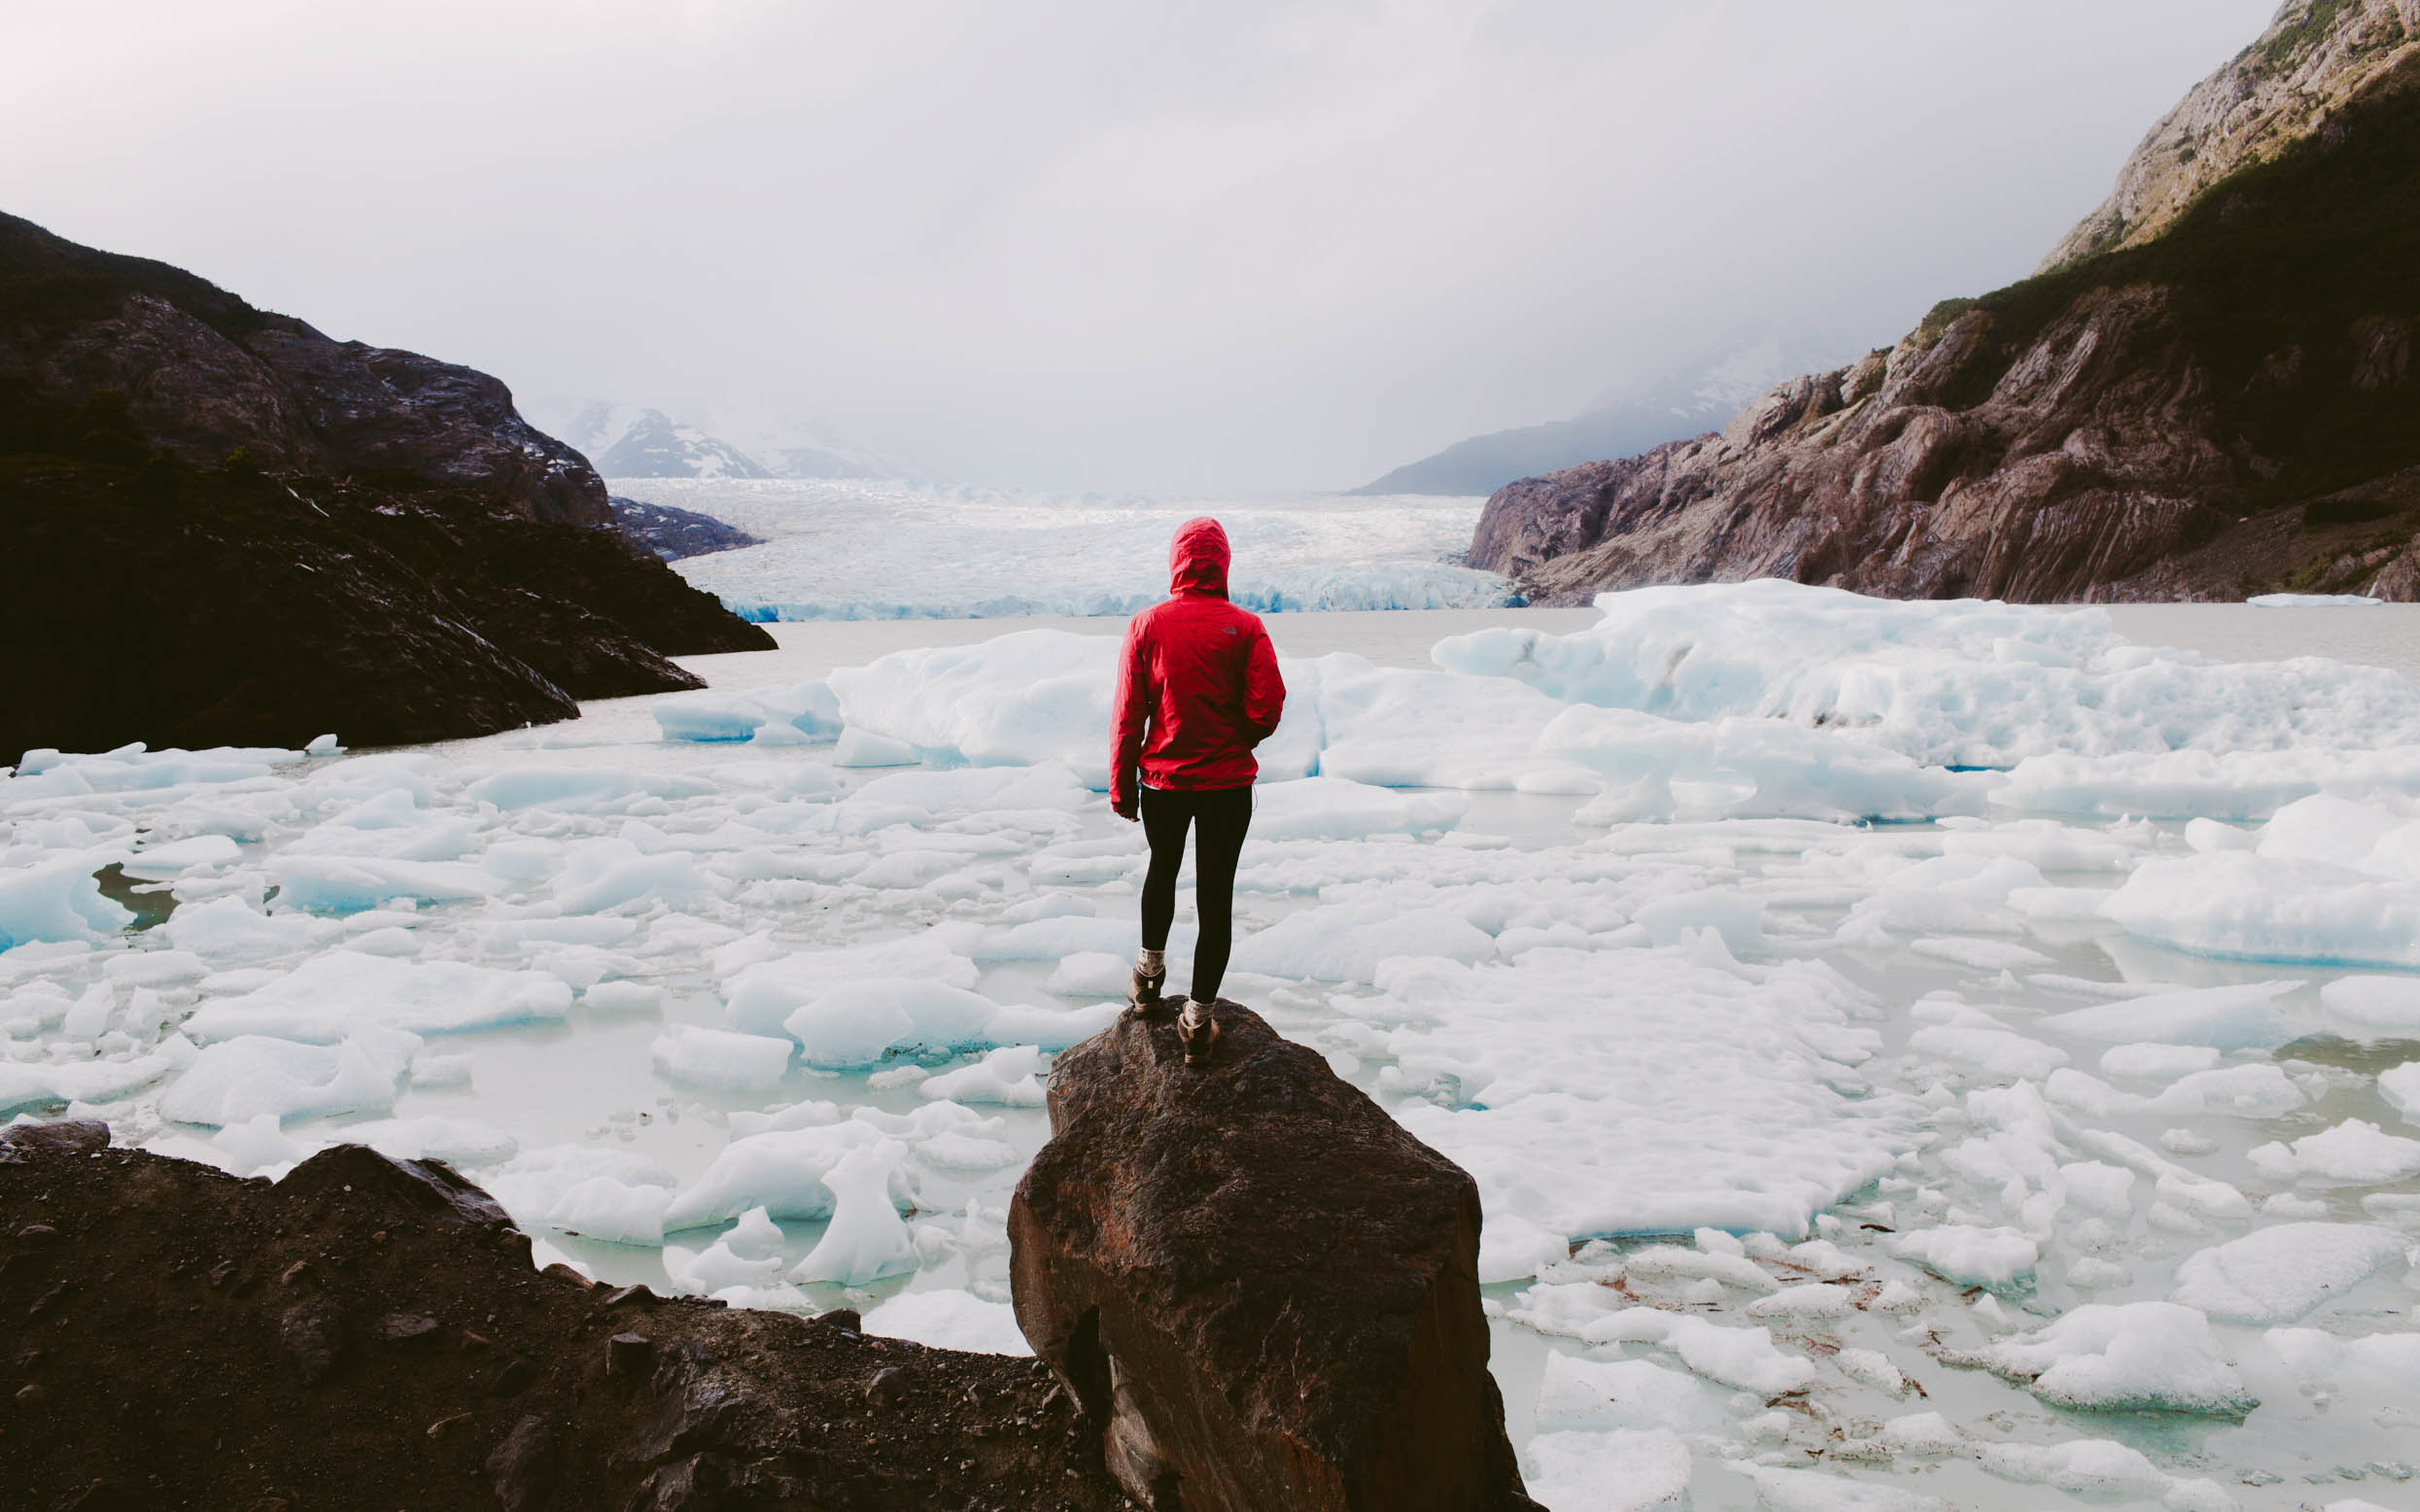 A person in a red jacket looking over an arctic scene